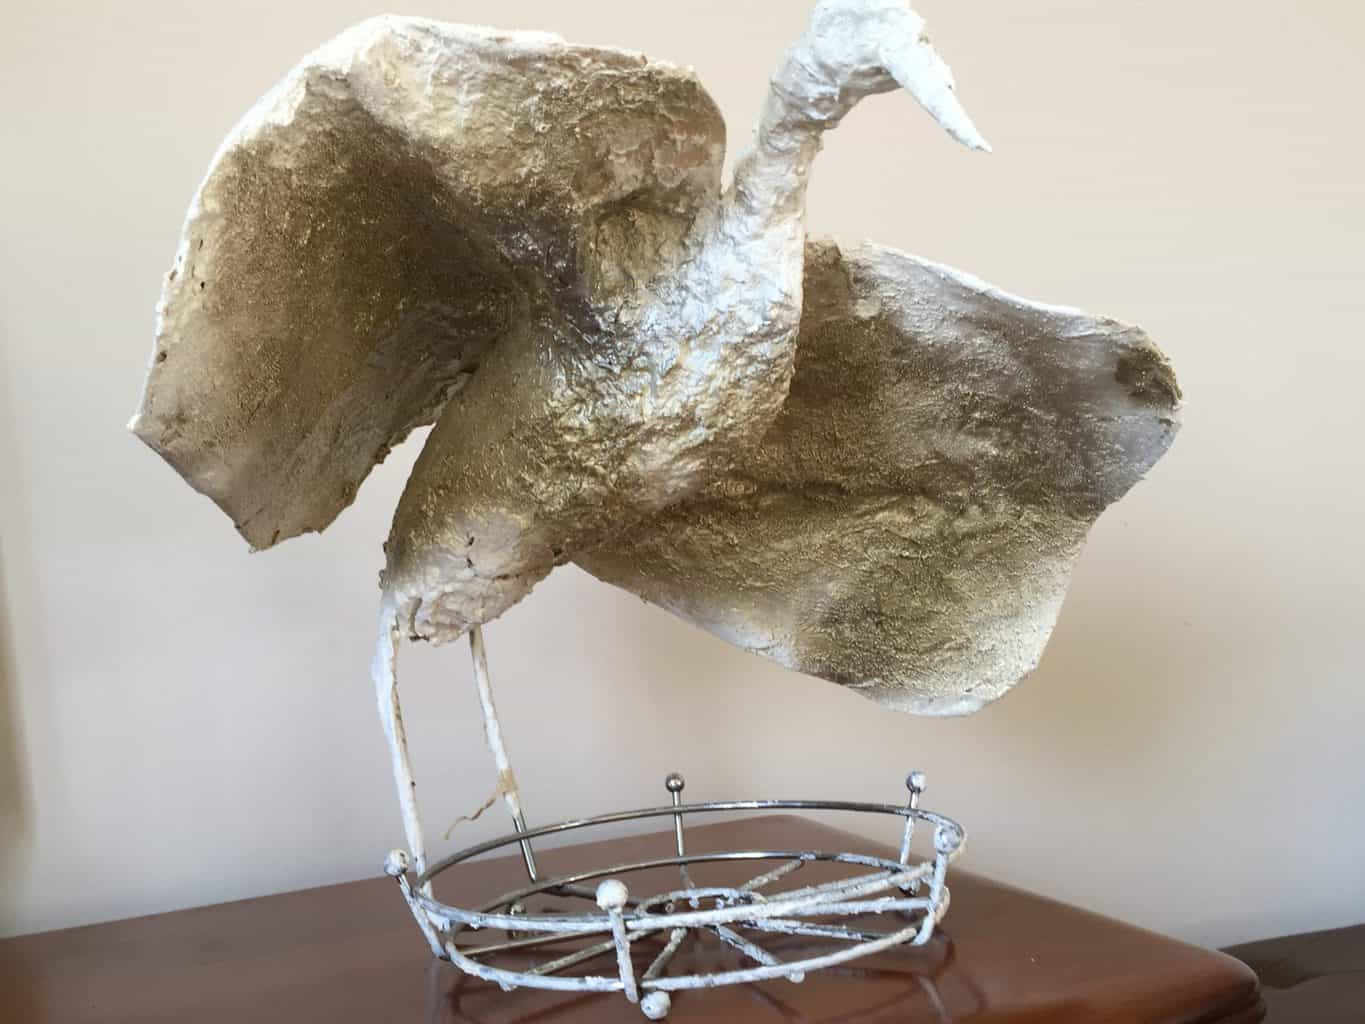 Paper mache bird with outstretched wings